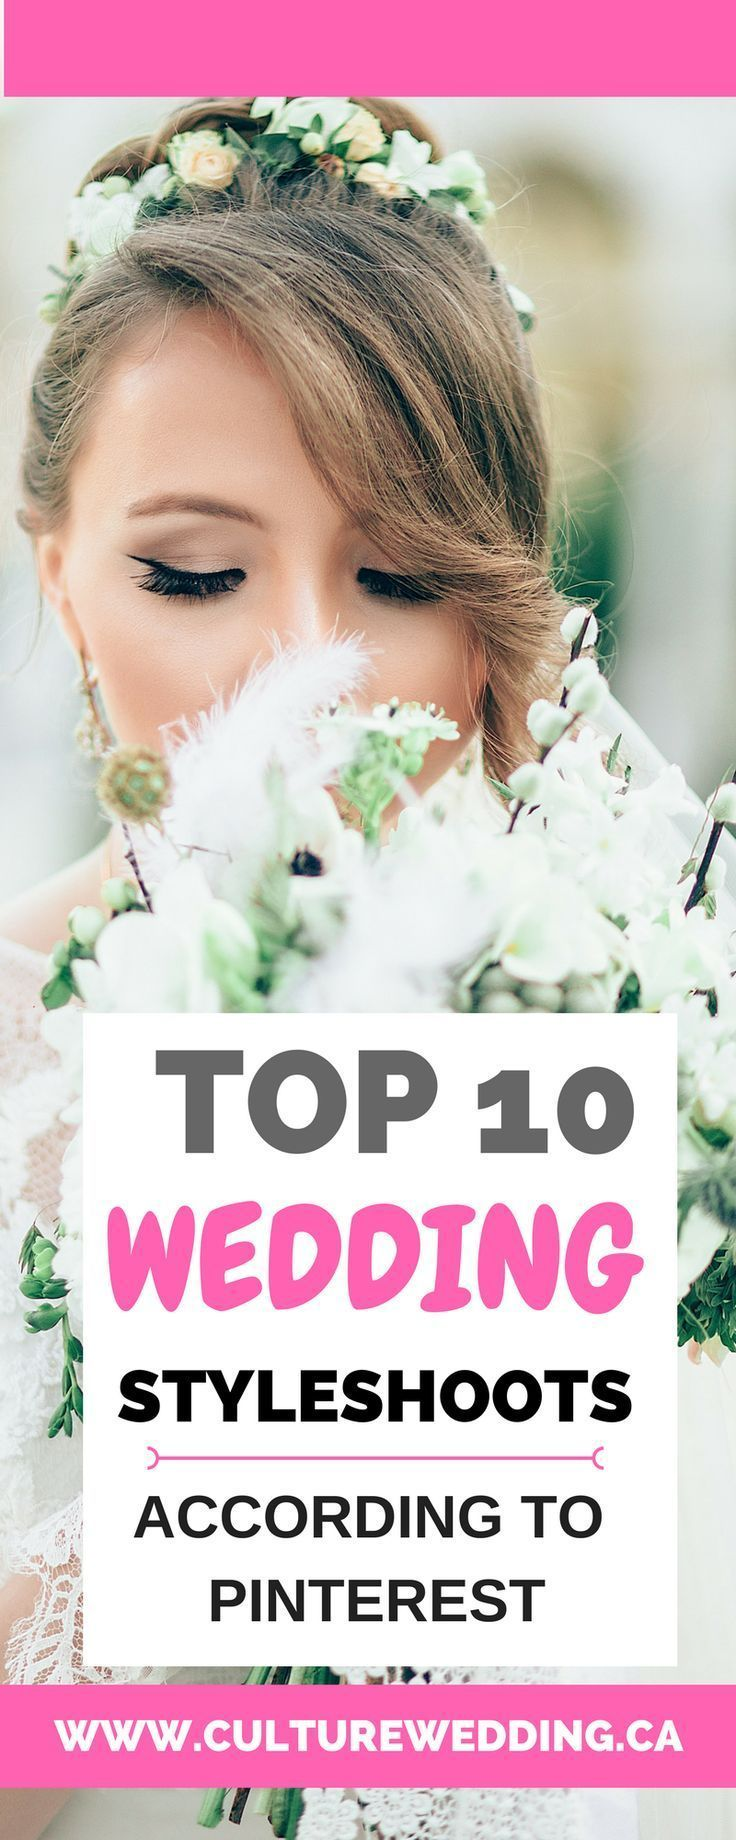 Top 10 wedding style shoot according to Pinterest, wedding ideas and inspiration for brides. Wedding dresses inspiration for the elegant bride Wedding invitation tips. #wedding #weddingideas #weddingtips Wedding planning tips. Wedding planning on a budget. How to plan a wedding.